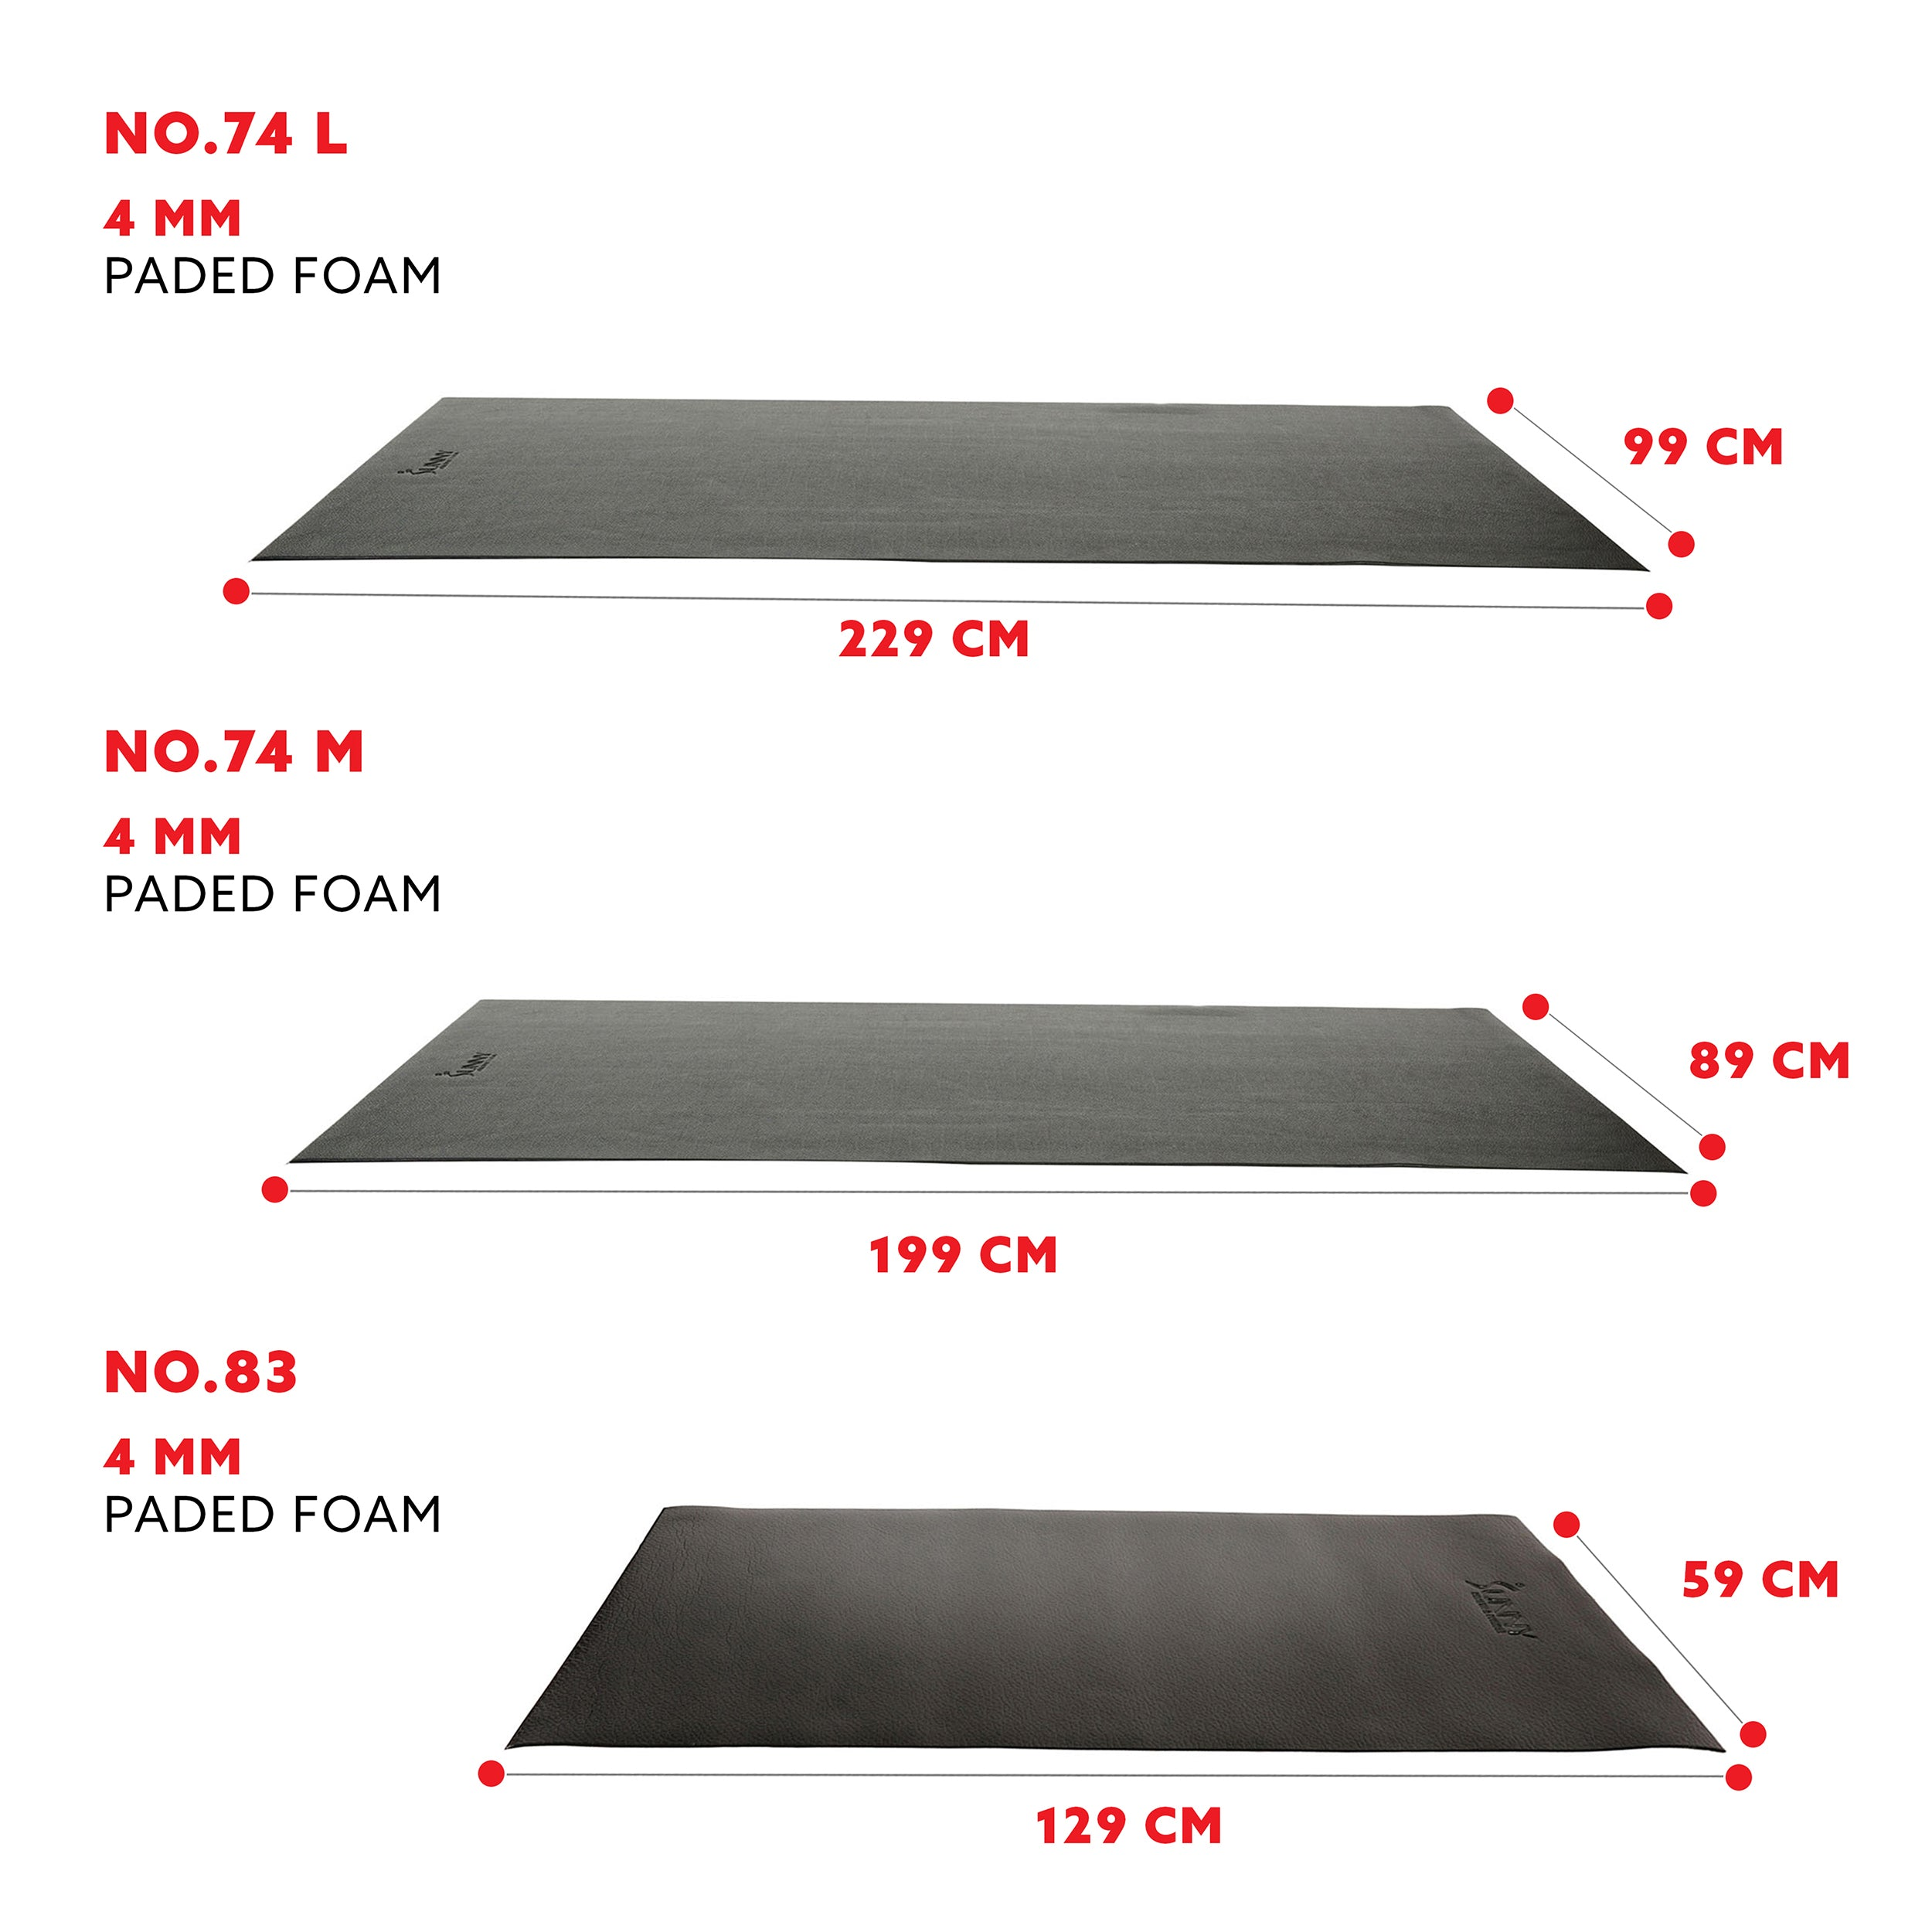 sunny-health-fitness-accessories-fitness-mat-large-No.074-L-No.083-comparisons-METRIC2.jpg